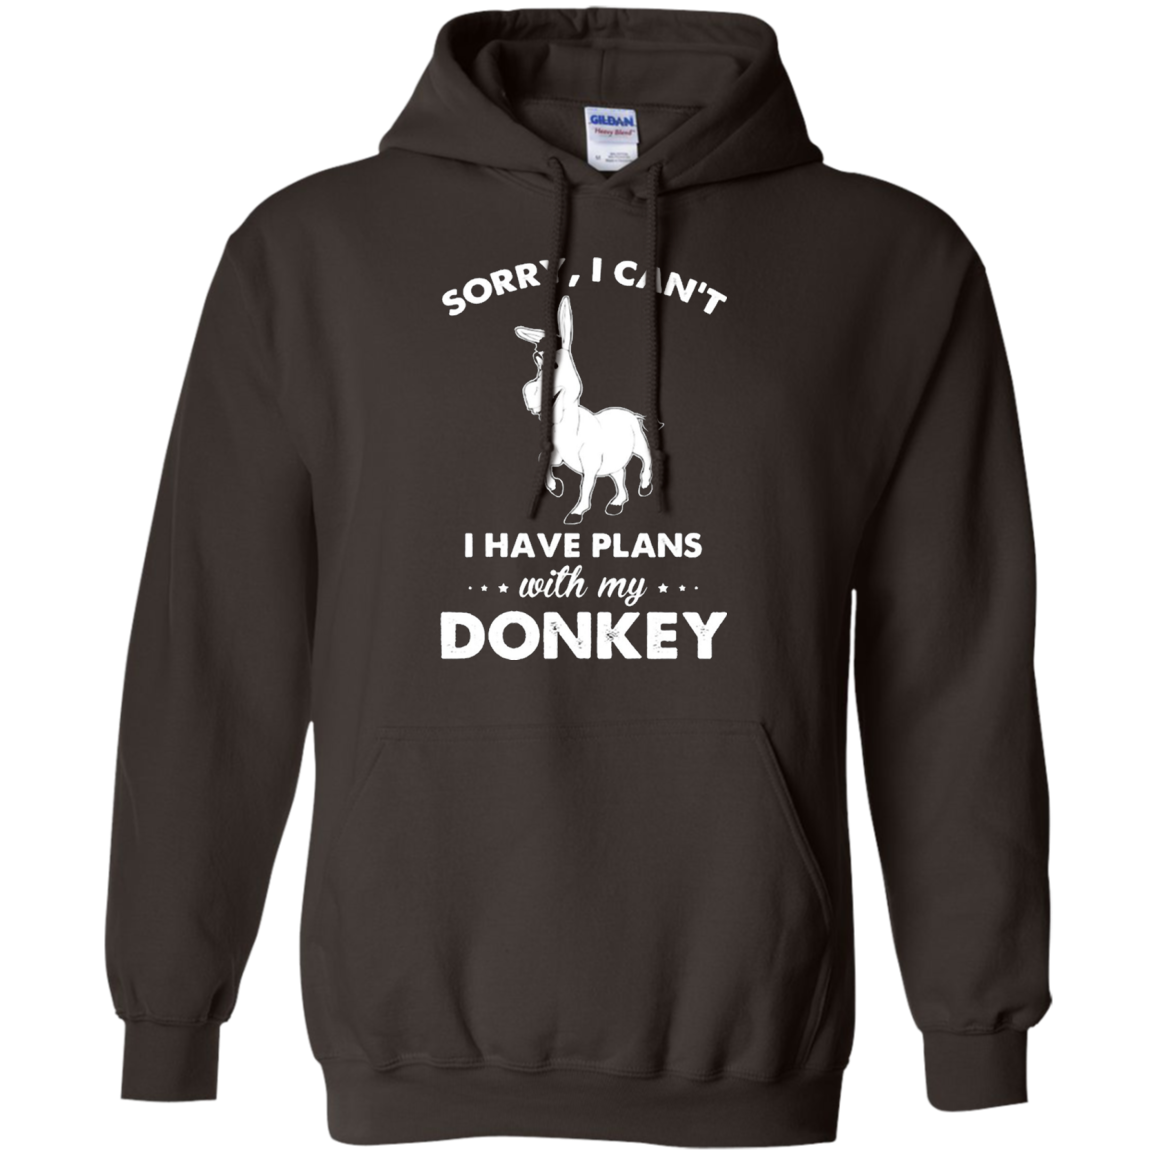 Donkey Shirt - I Have Plans With My Donkey Shirt